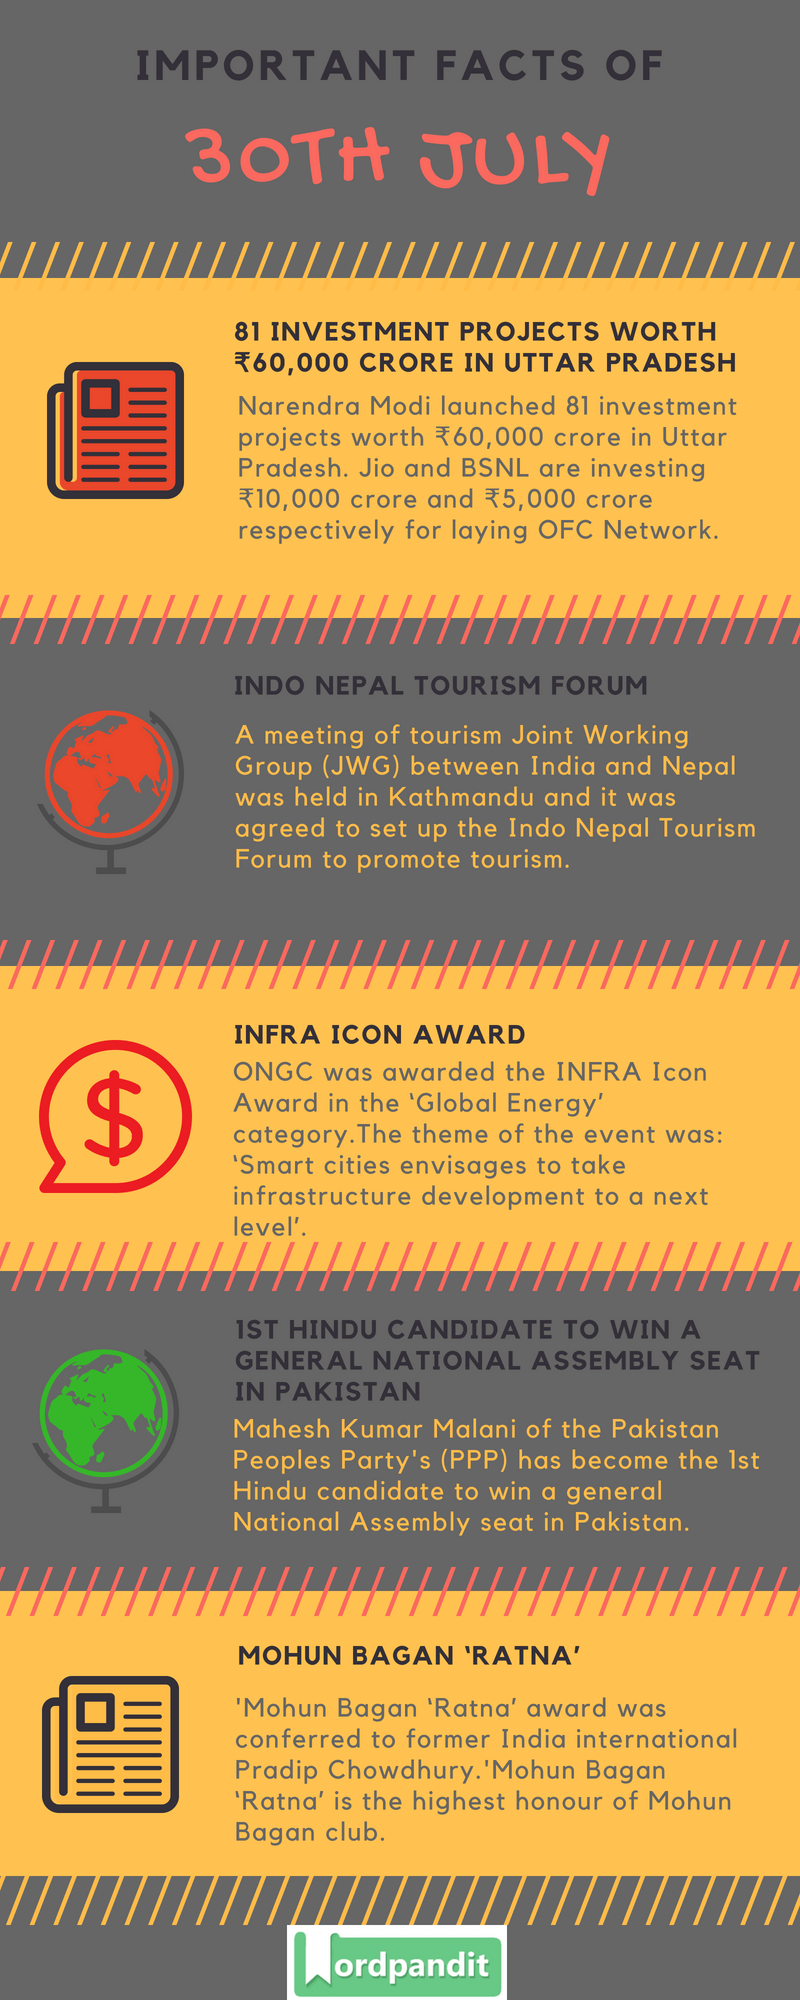 Daily Current Affairs 30 July 2018 Current Affairs Quiz July 30 2018 Current Affairs Infographic